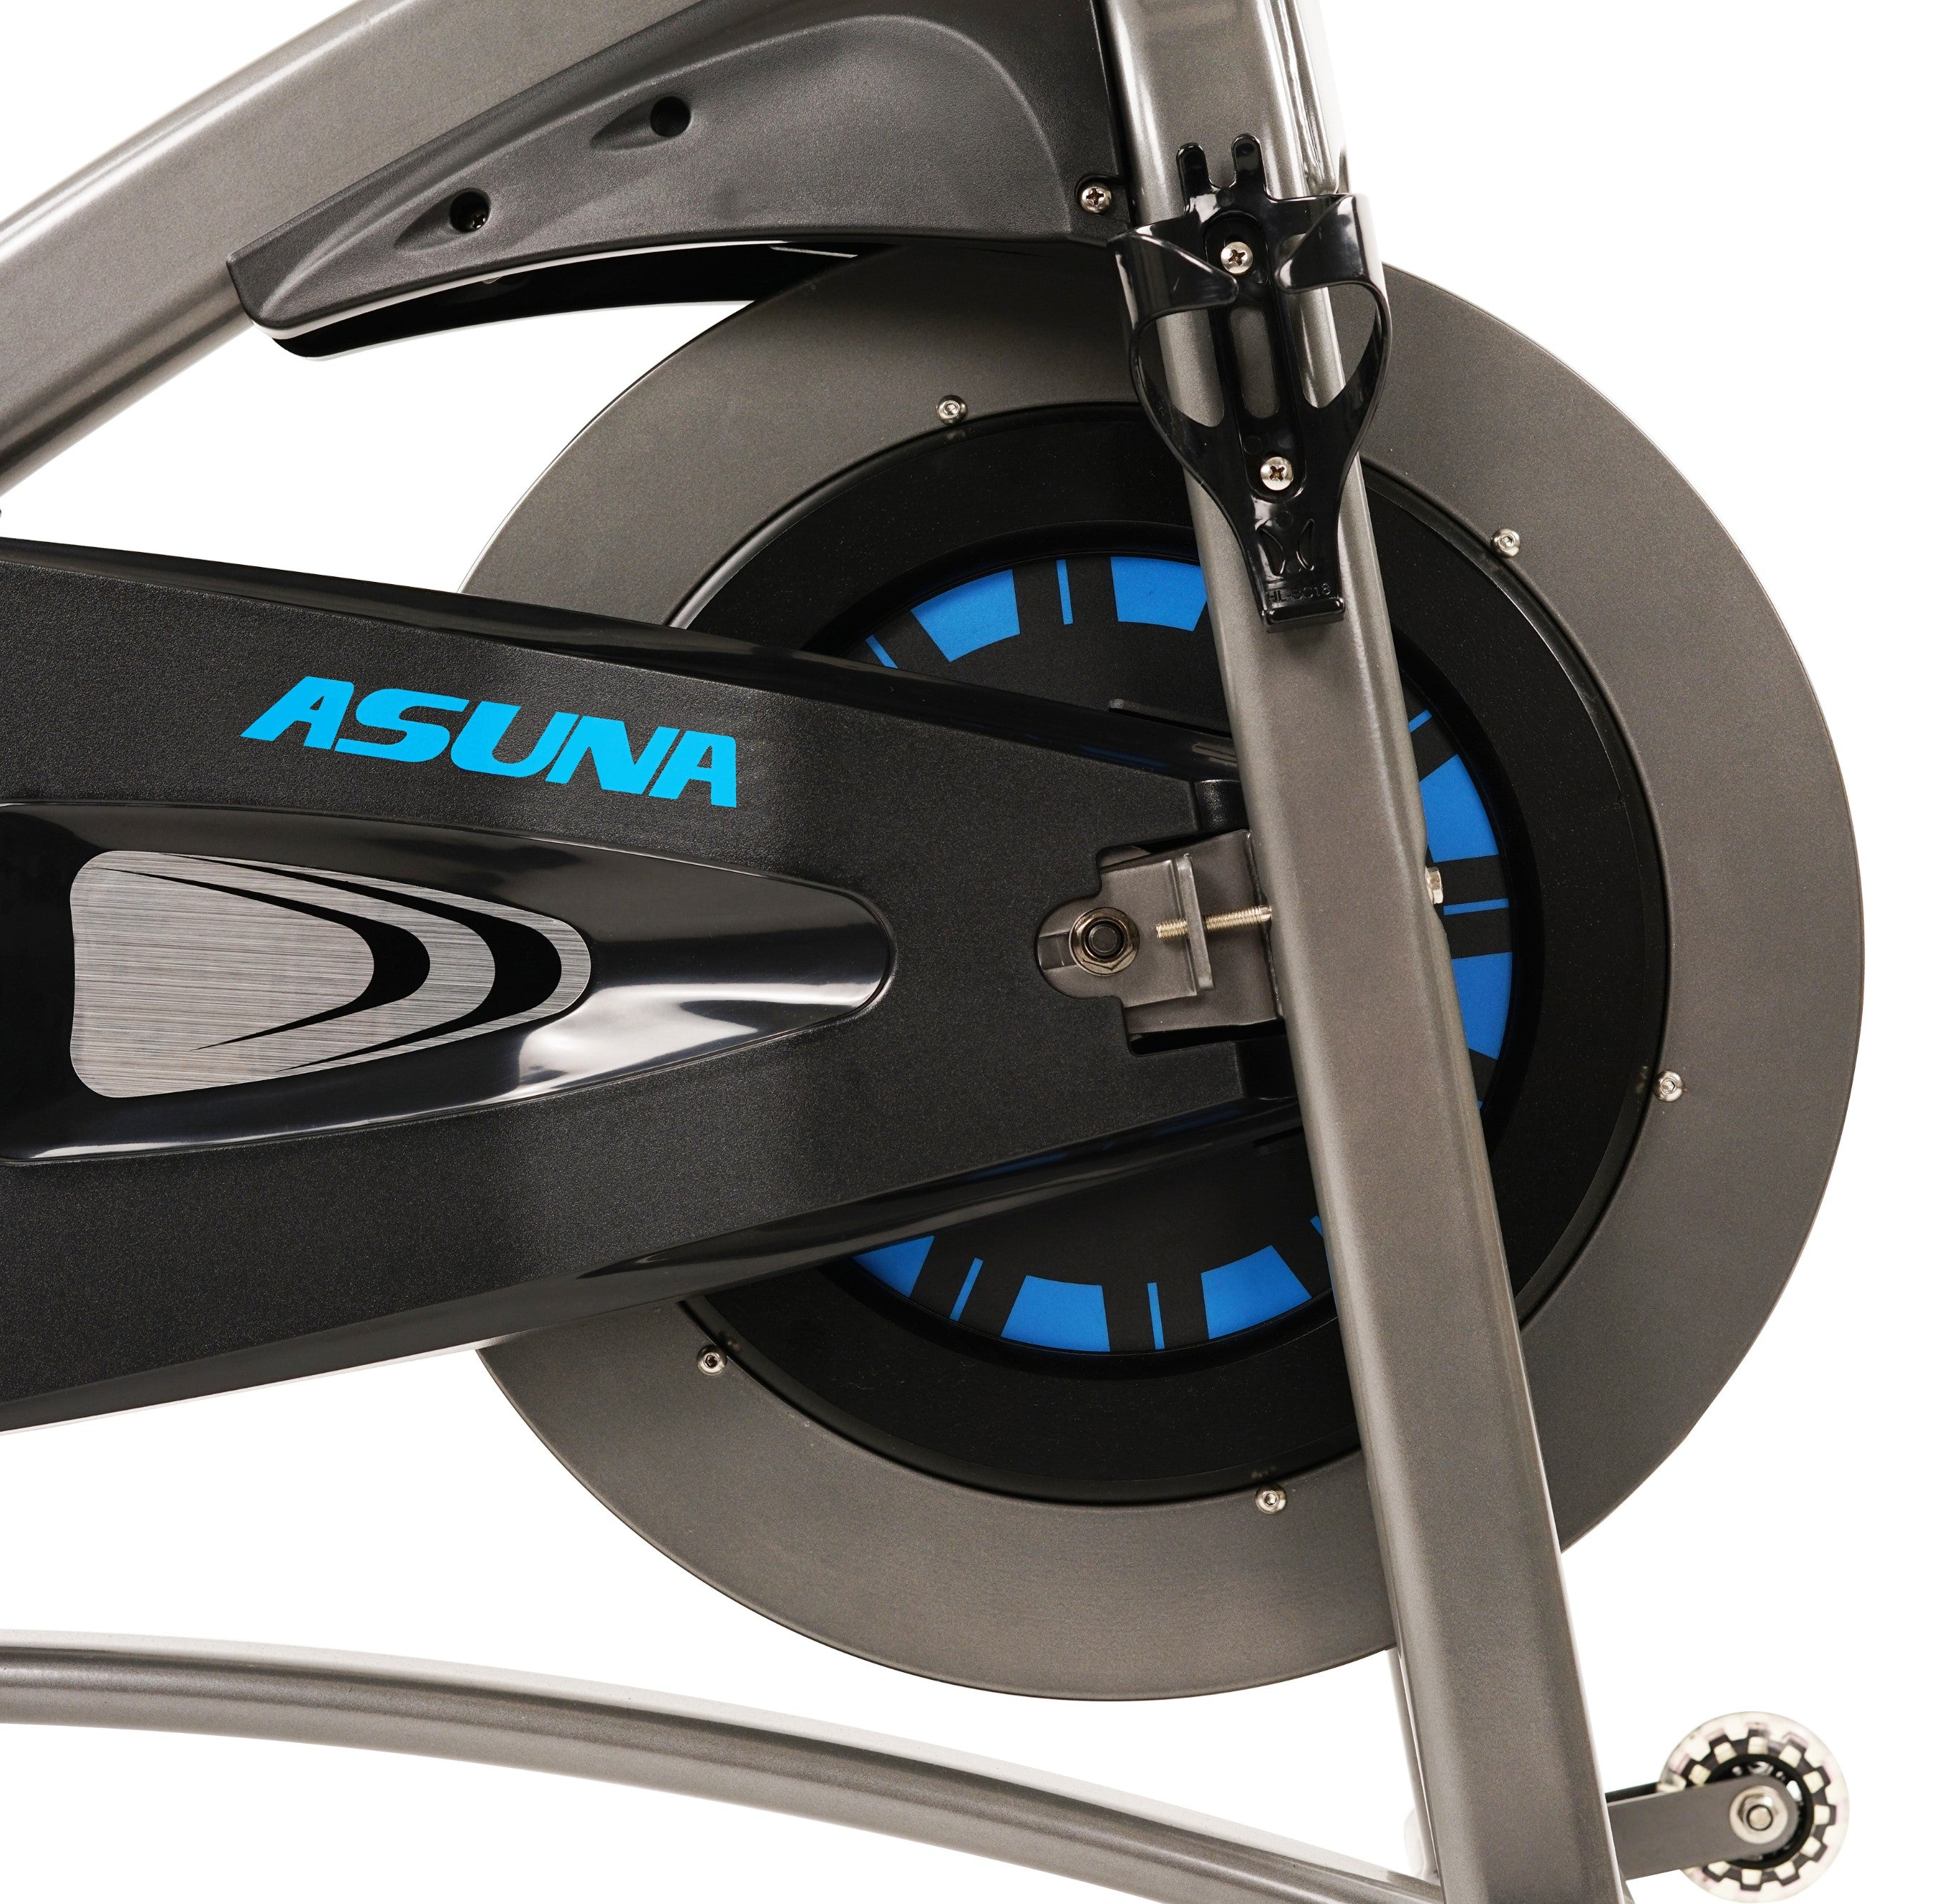 sunny-health-fitness-bikes-magnetic-belt-drive-commercial-indoor-cycling-trainer-5100-flywheel